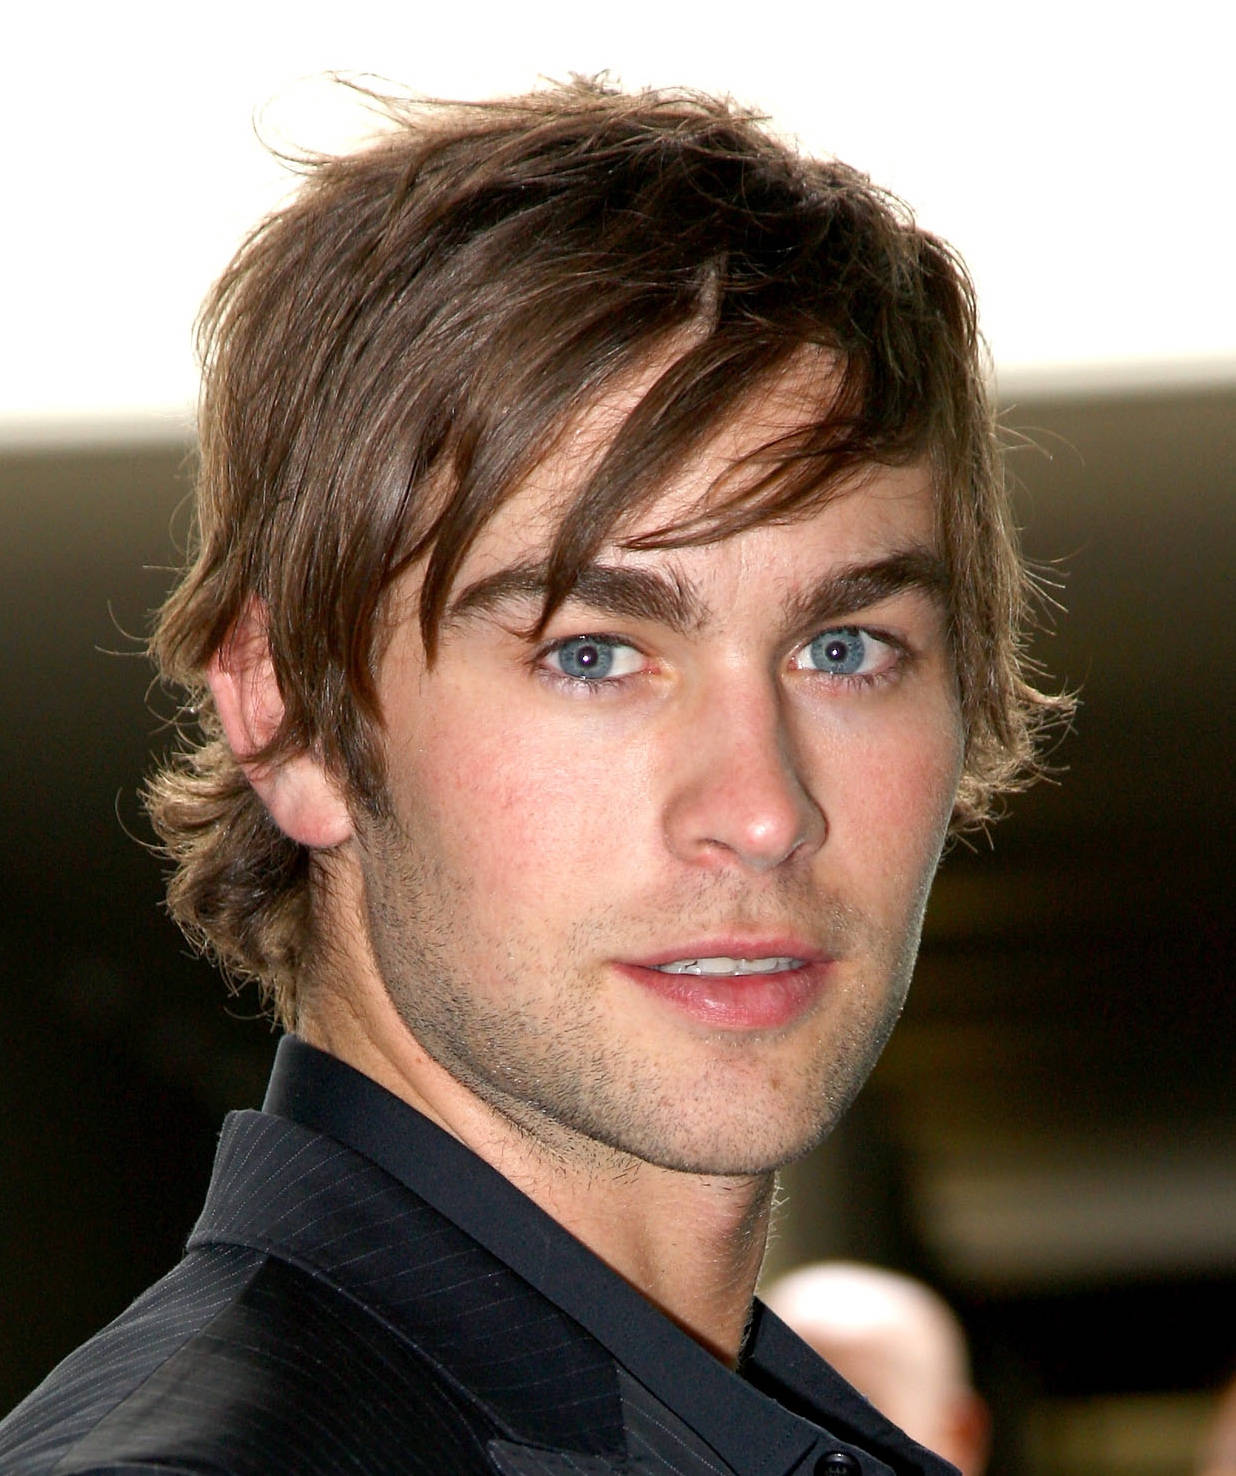 Hairstyles Popular 2012 Shaggy Hairstyle For Men